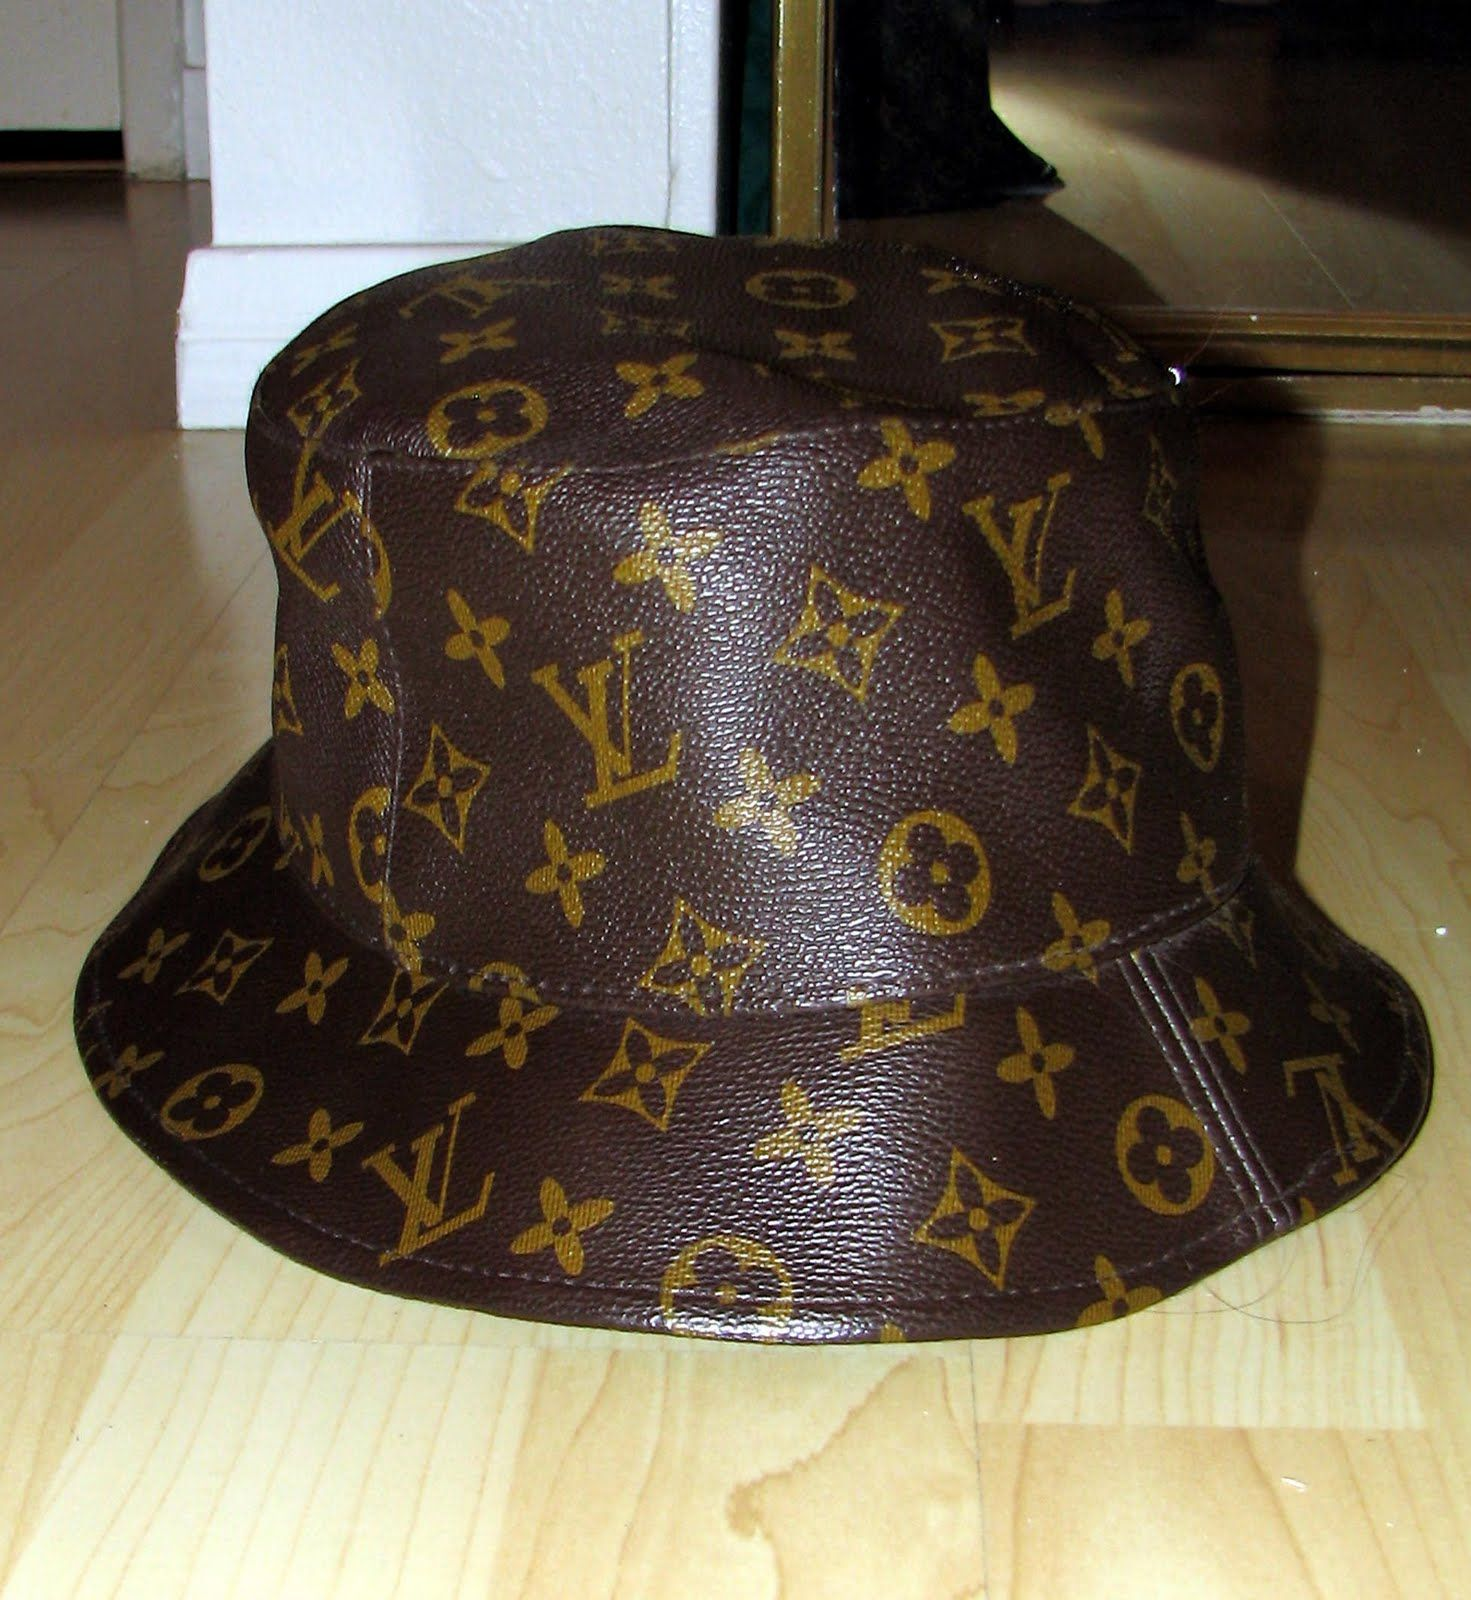 Louis Vuitton Bucket Hat Louis Vuitton Hat Louis Vuitton Louis Vuitton Accessories